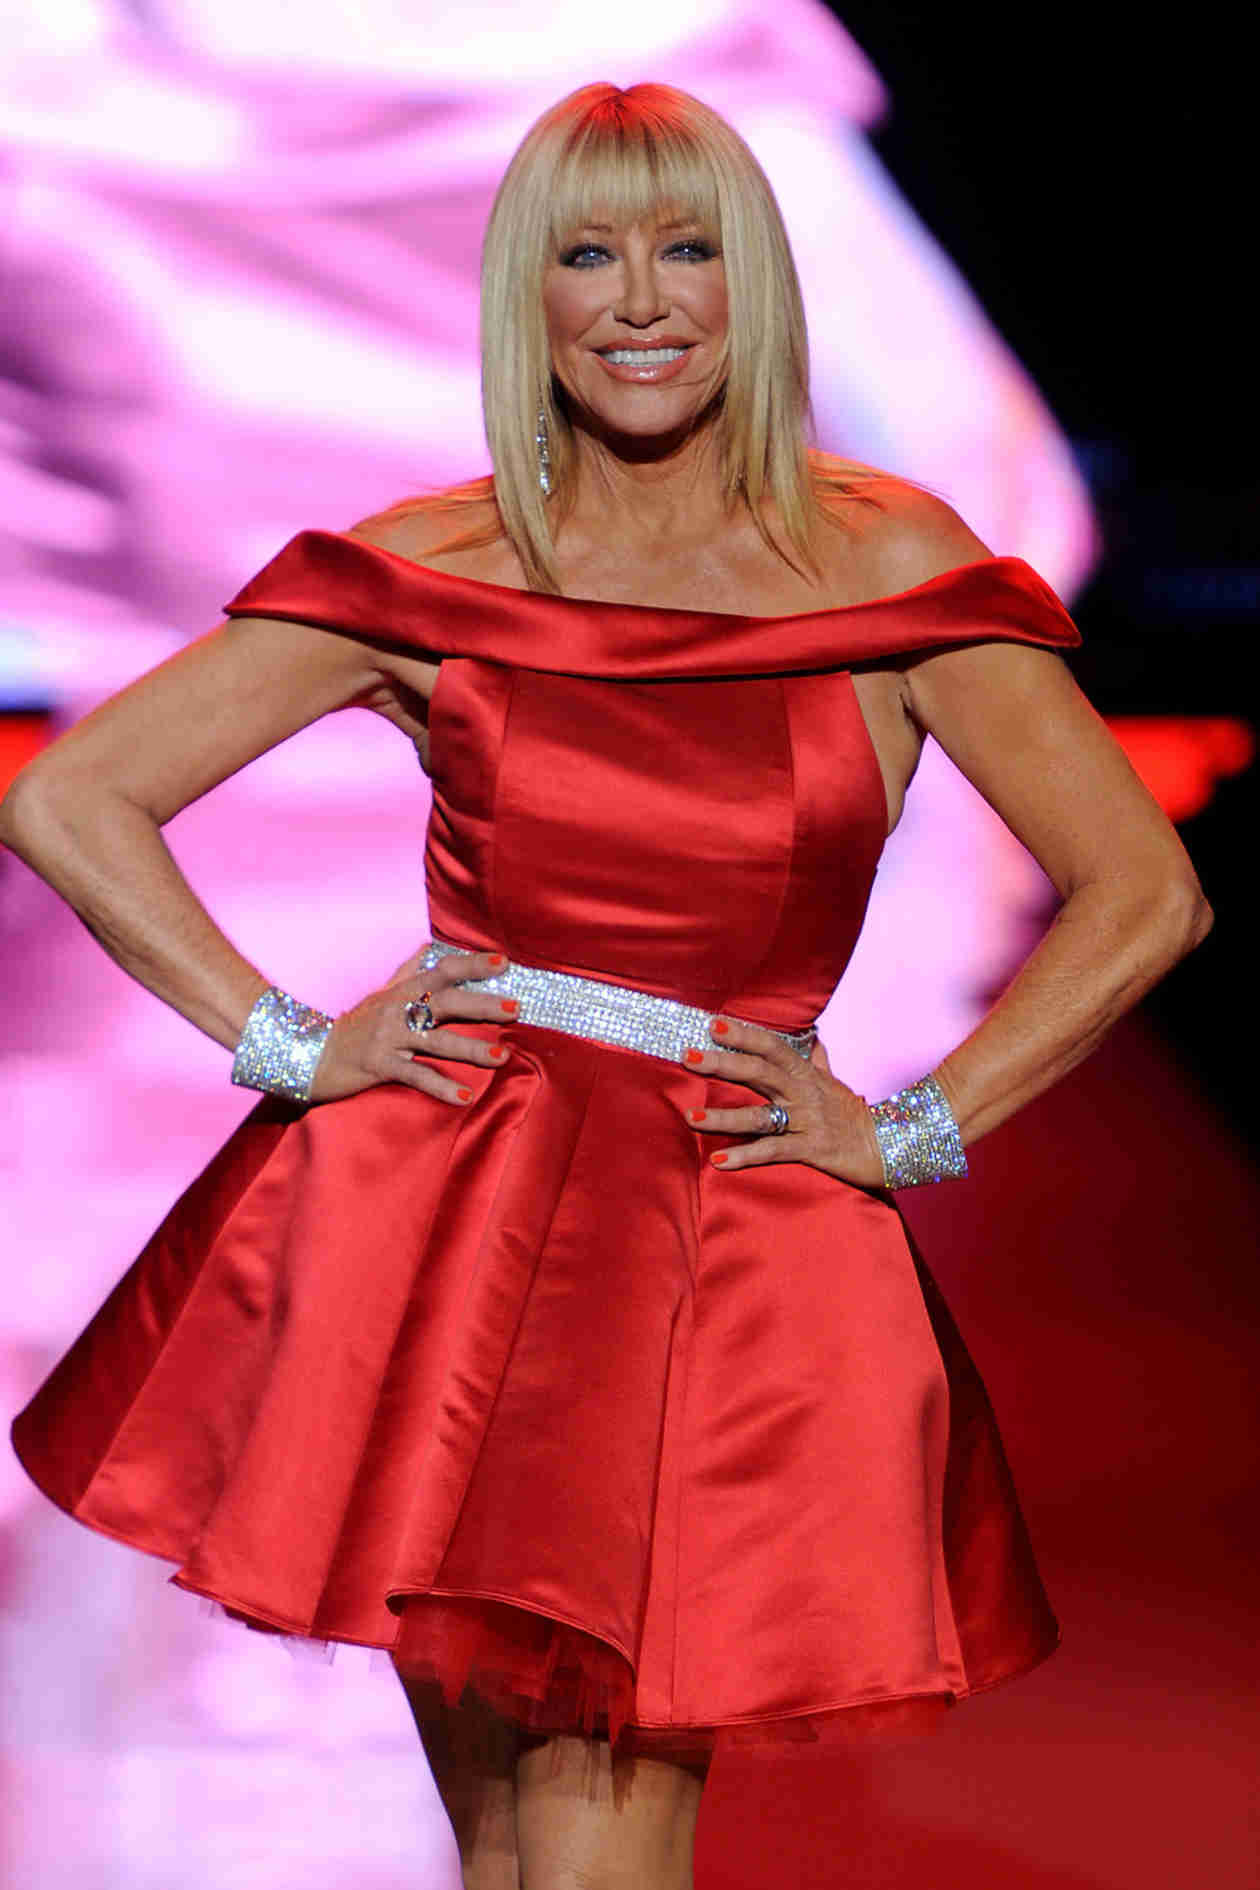 Is Suzanne Somers Joining The Real Housewives of Beverly Hills?